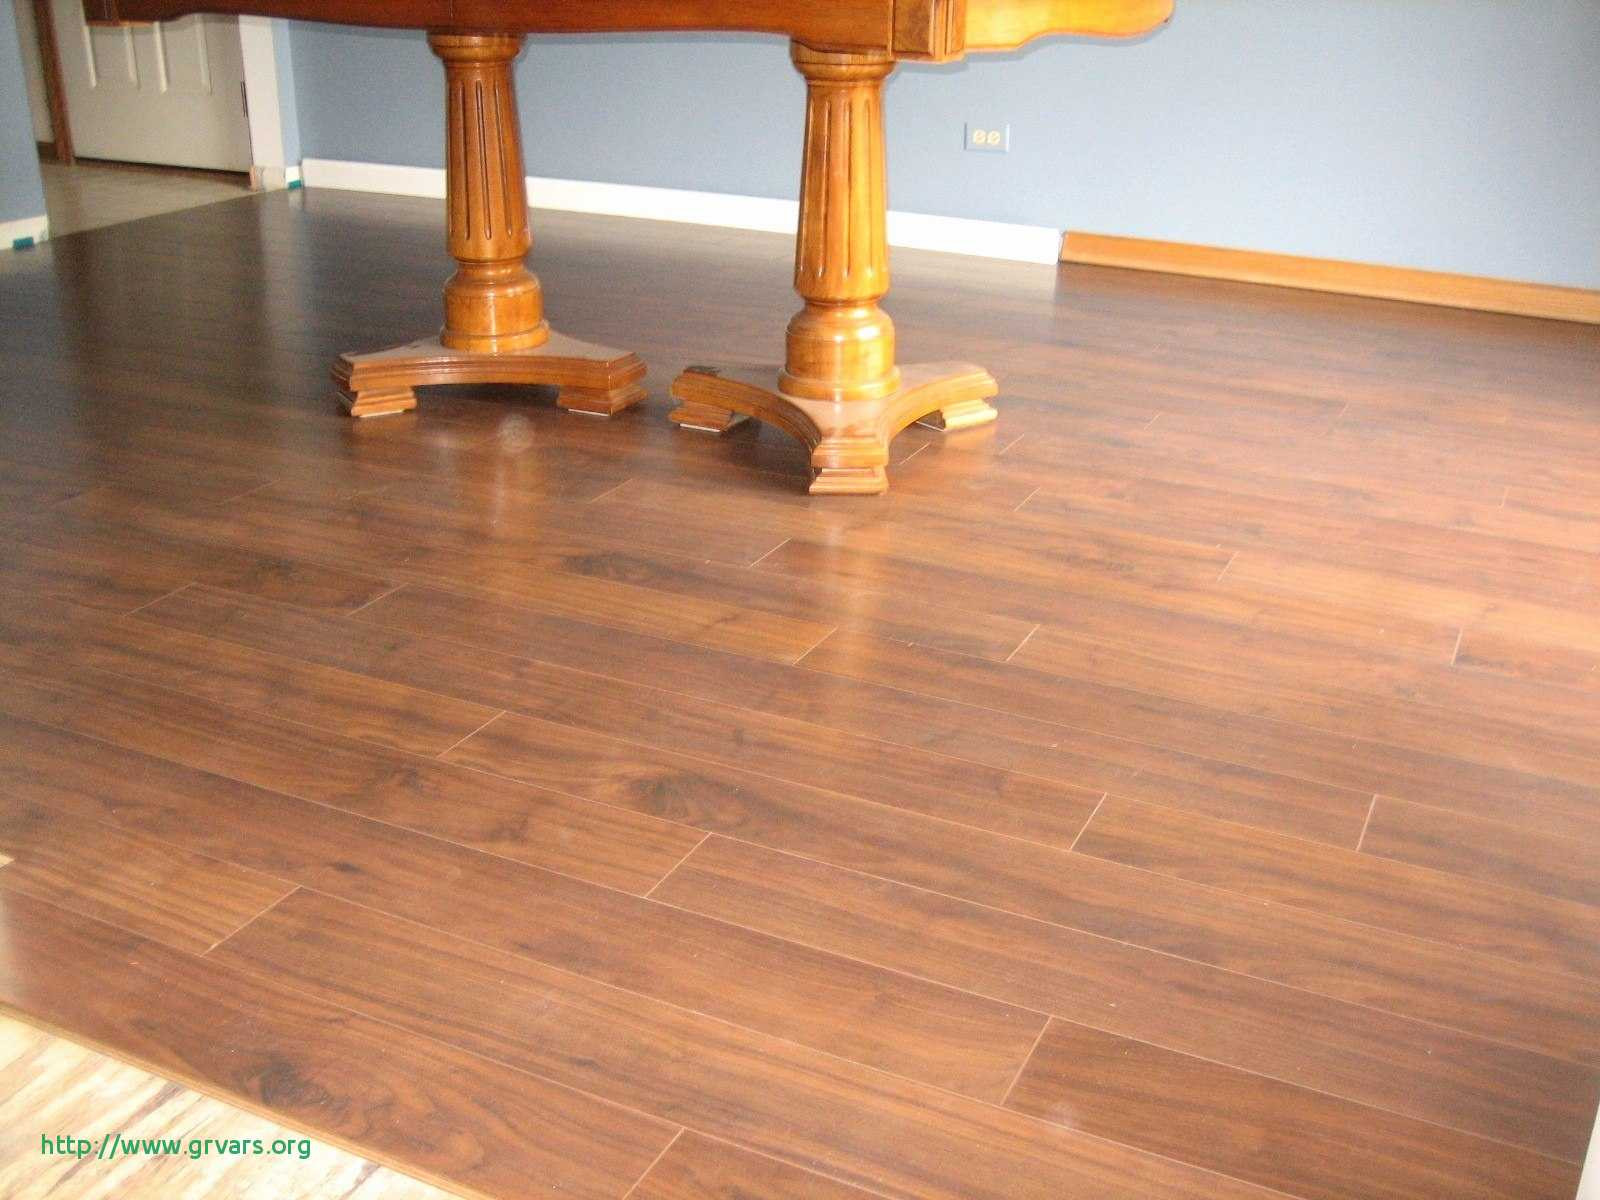 hardwood flooring los angeles yelp of 15 inspirant how to fix a sloping floor ideas blog throughout how to fix a sloping floor a‰lagant how to fix buckling hardwood floors podemosleganes